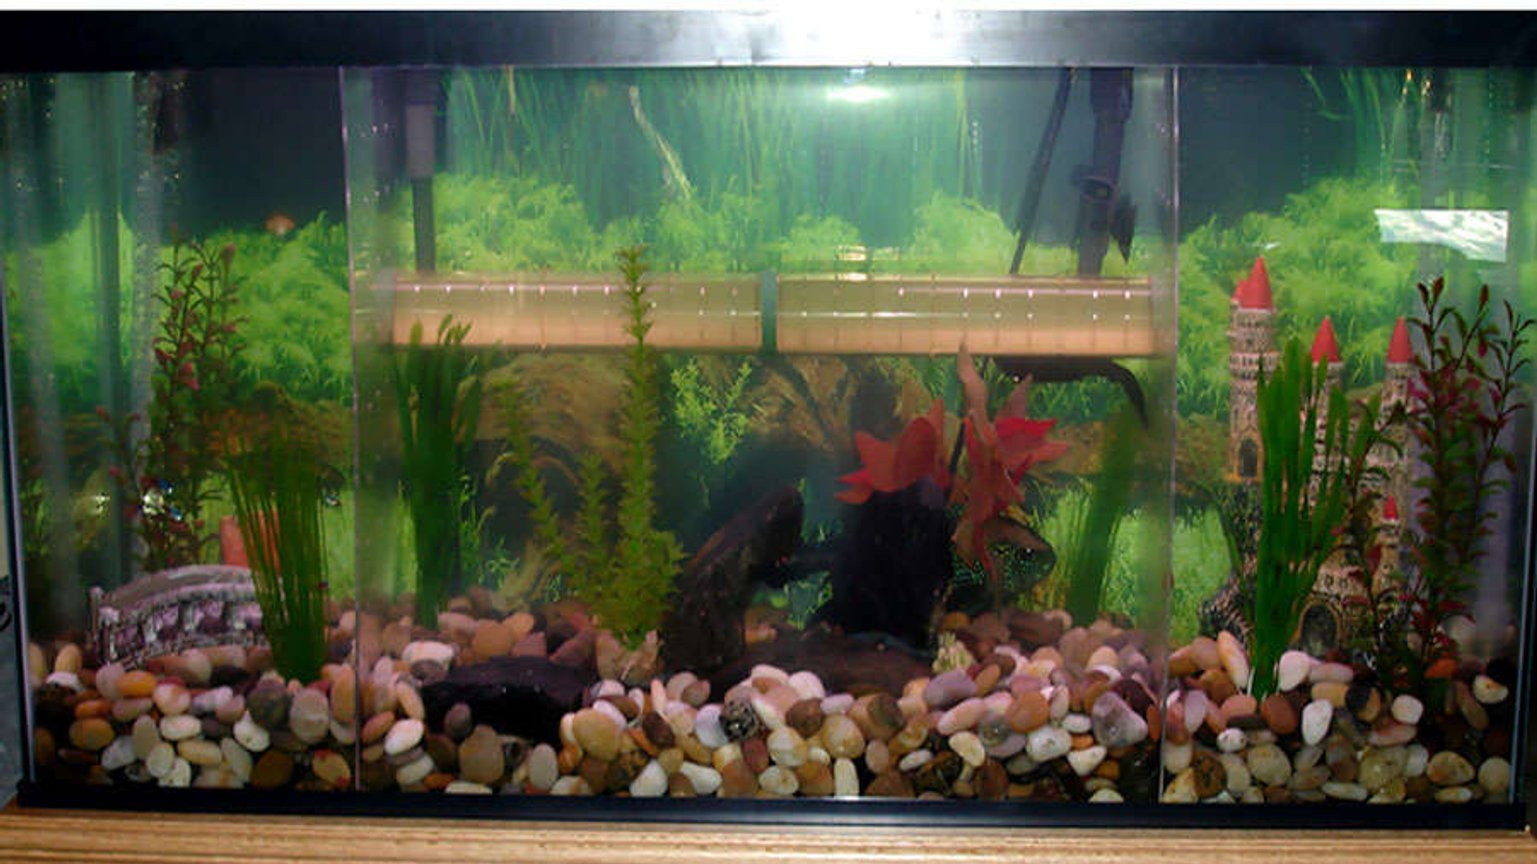 55 gallons freshwater fish tank (mostly fish and non-living decorations) - Full view of the tank